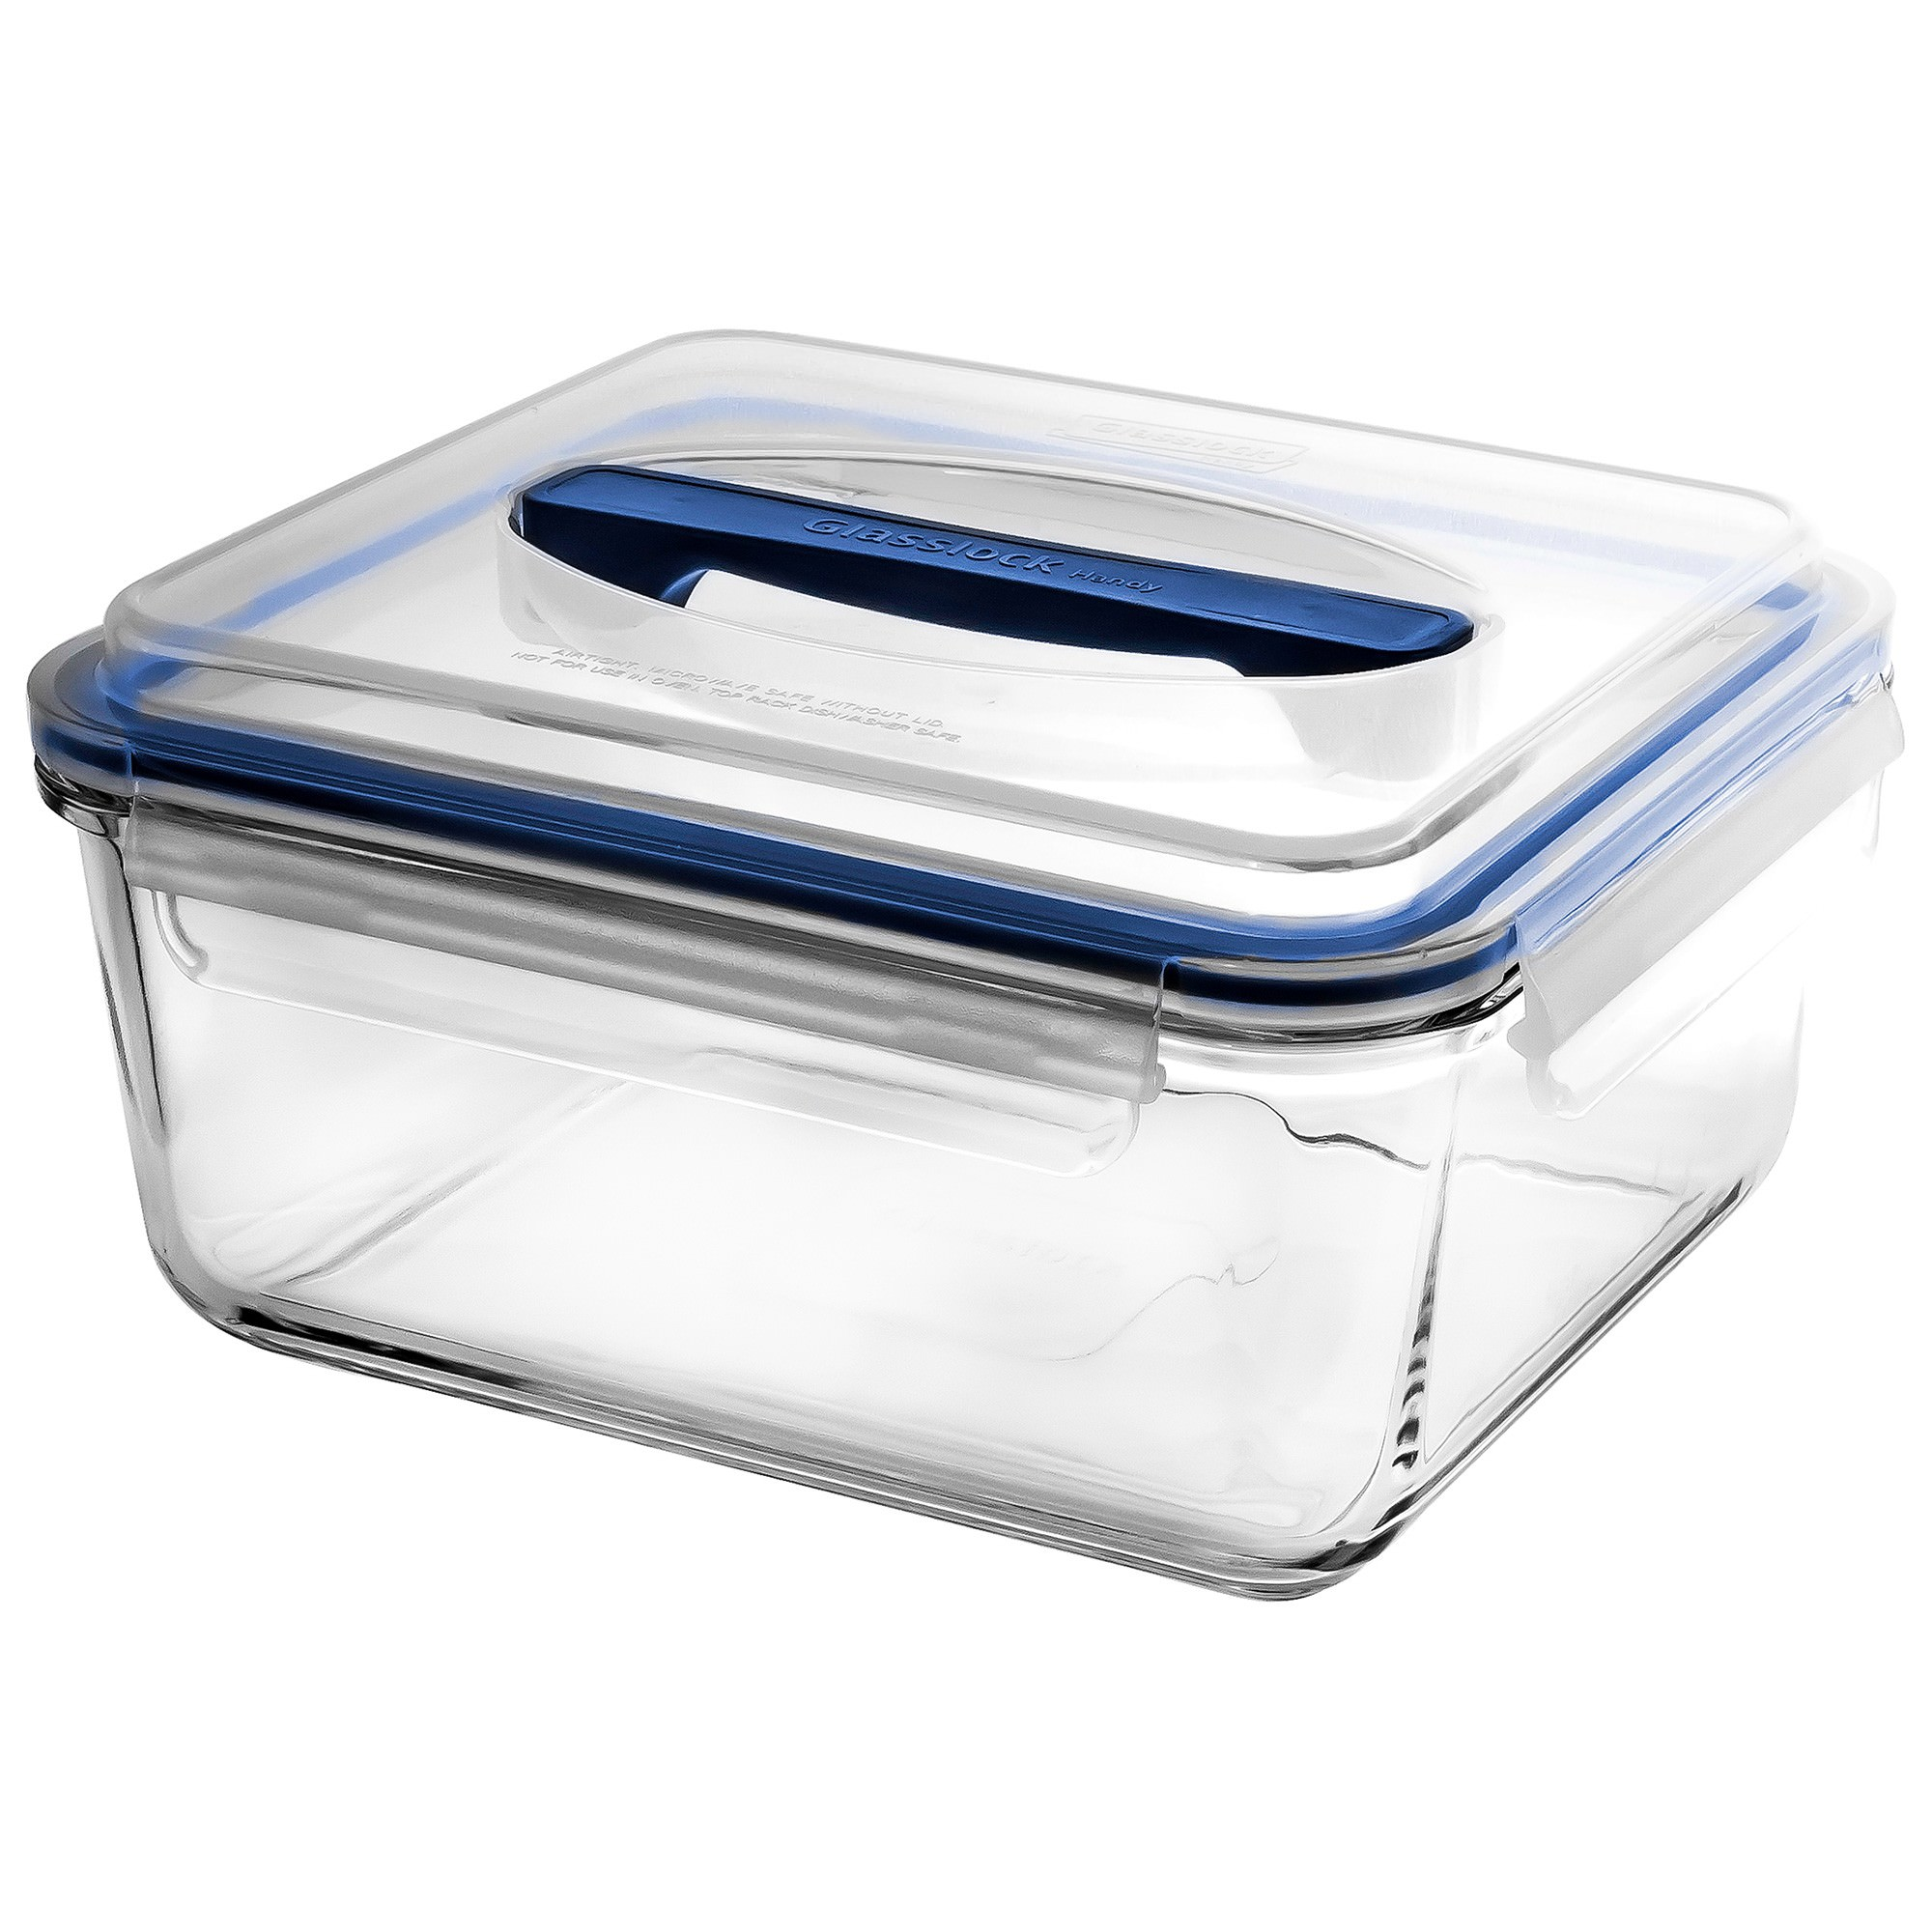 Glasslock Handy Tempered Glass Rectangle Container, 2700ml